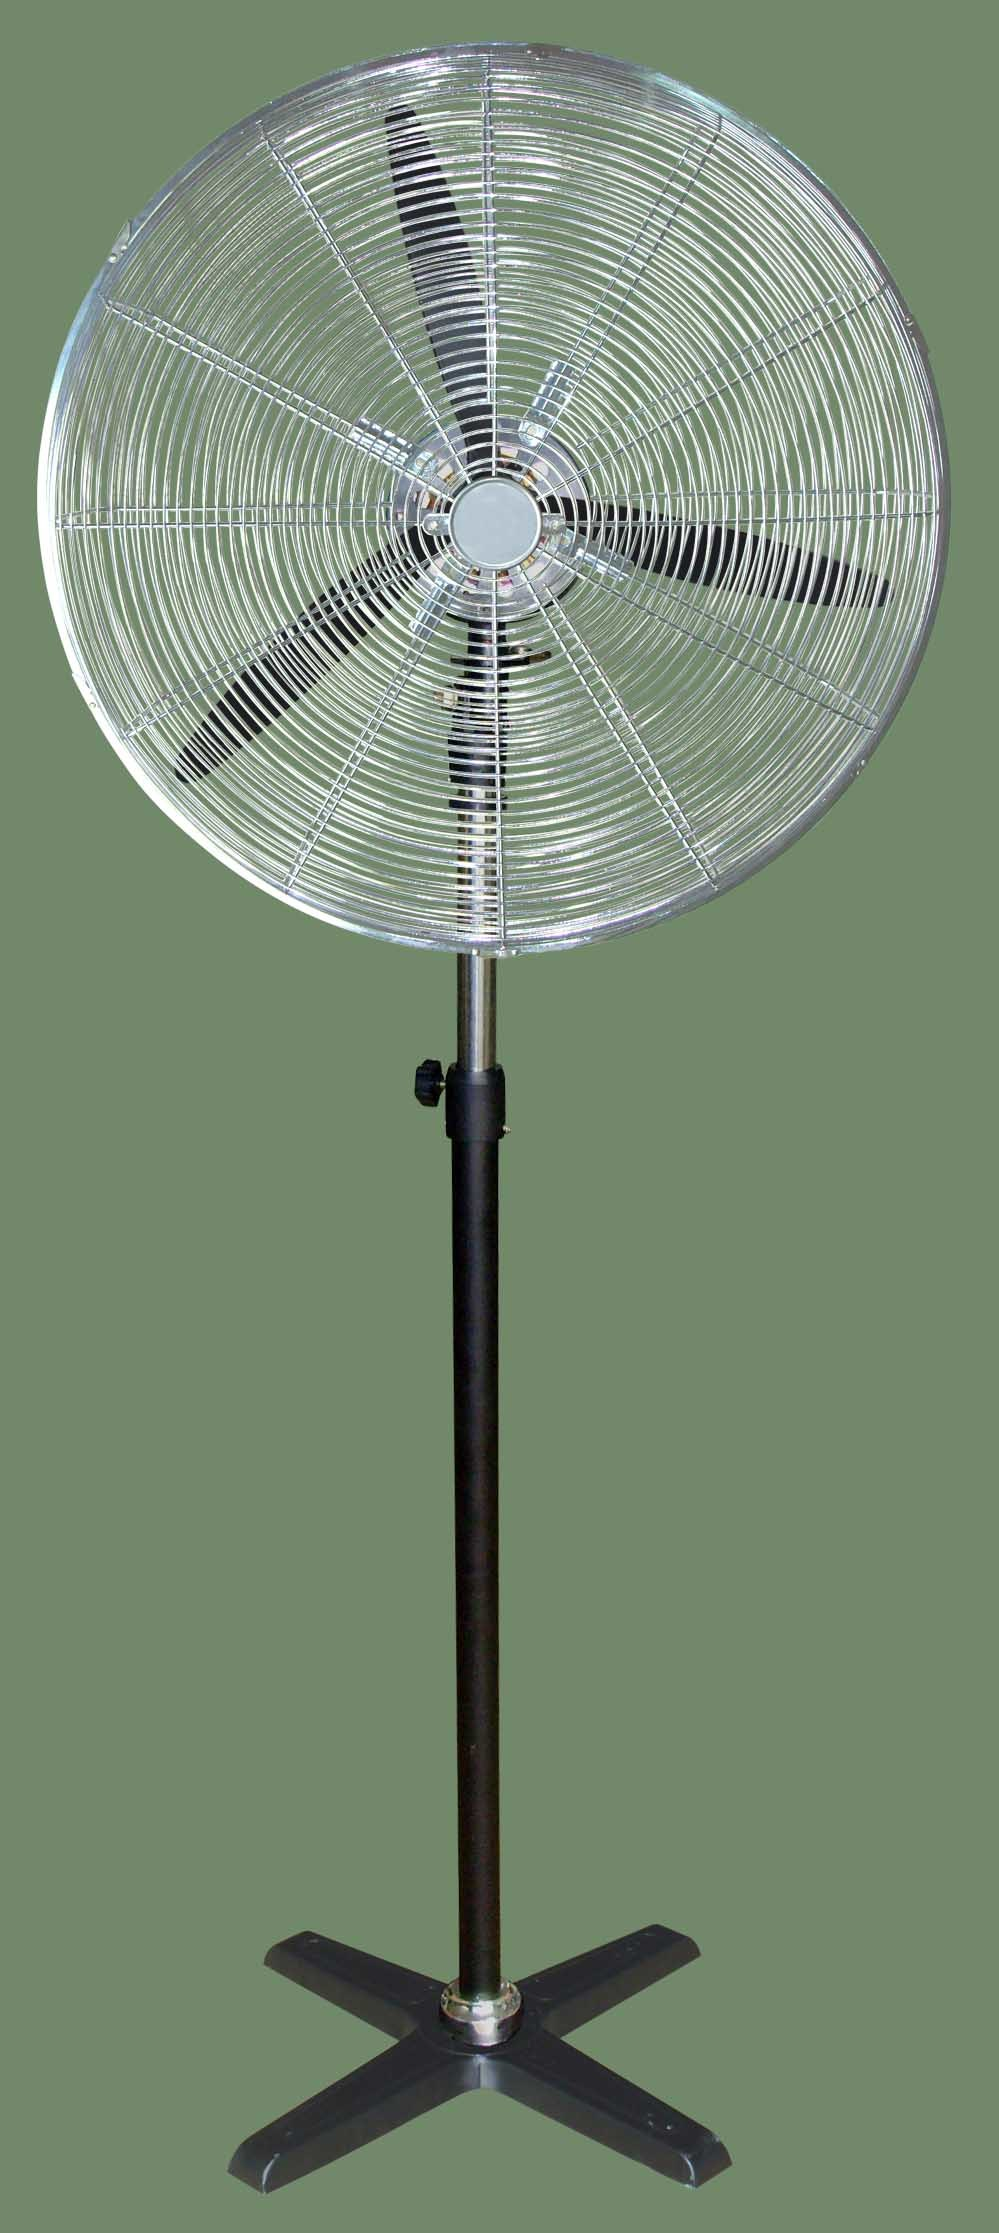 Industrial Stand Fan : The information is not available right now